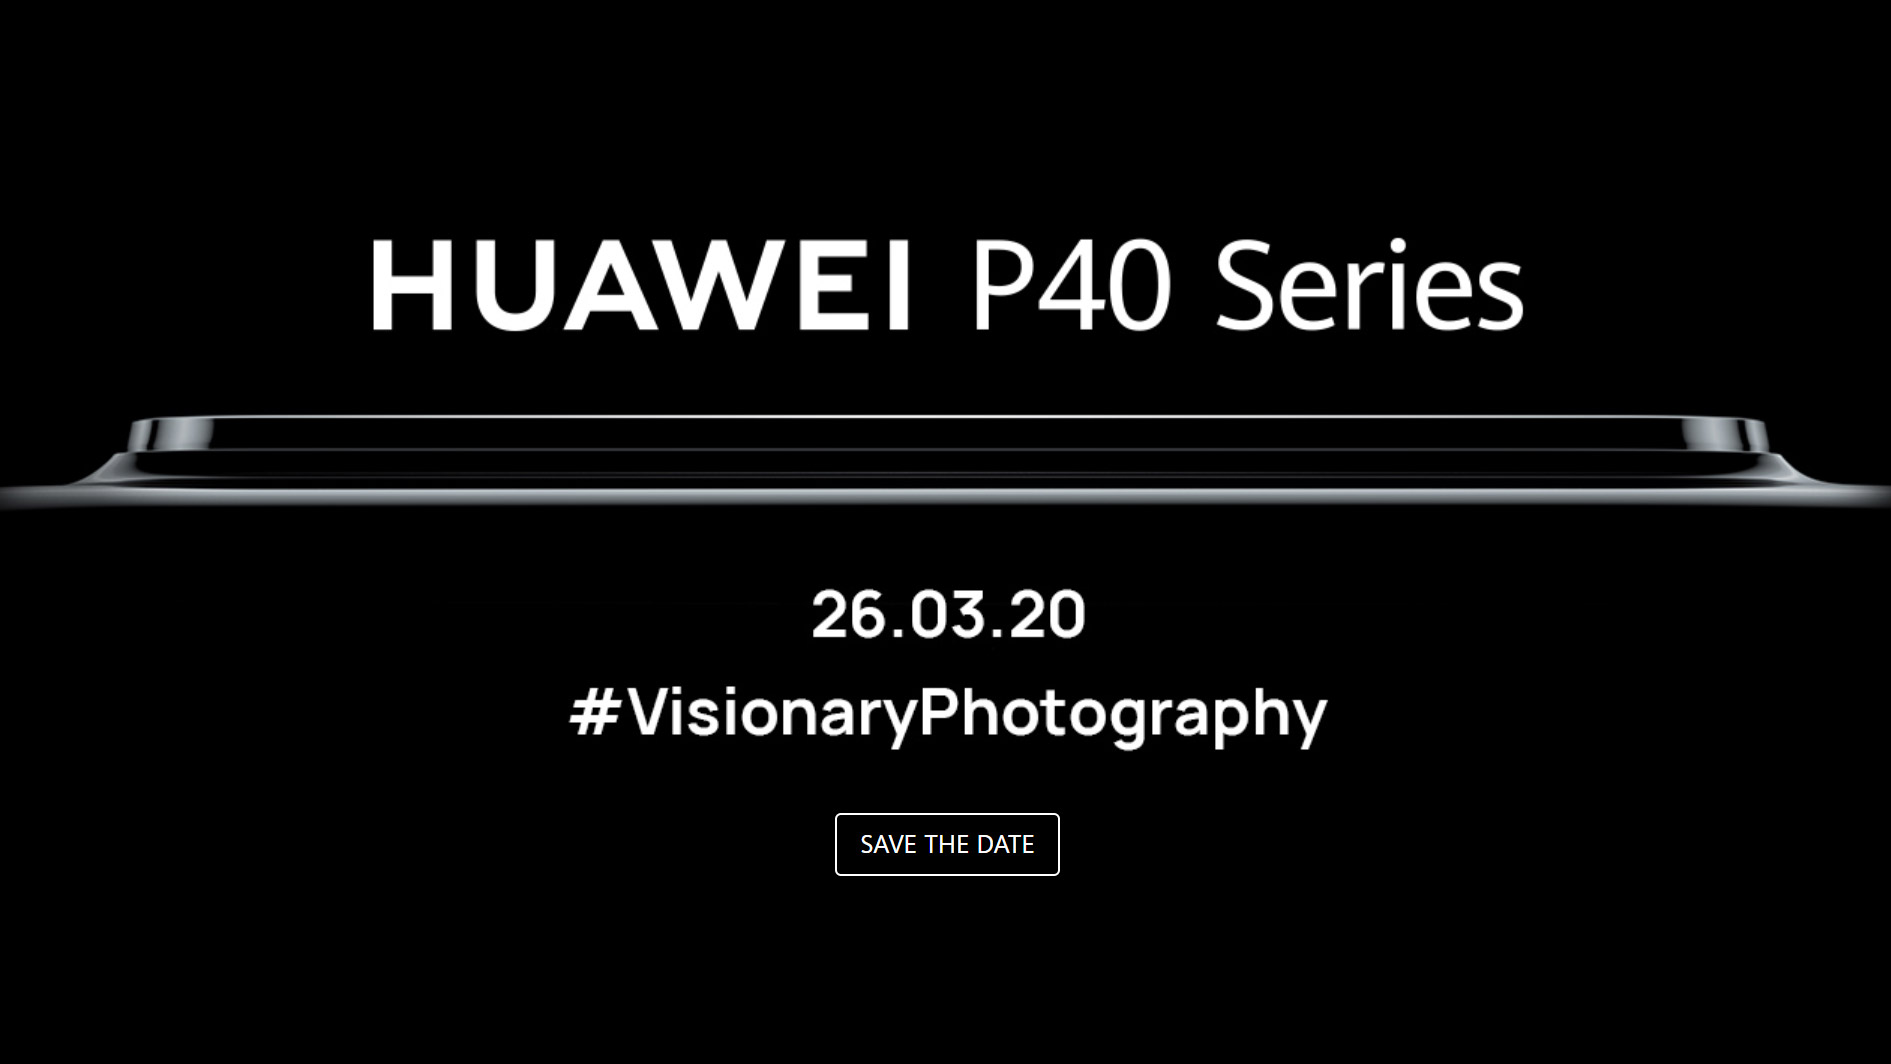 Huawei P40 Launch Event Teaser Suggests It S Another Phone